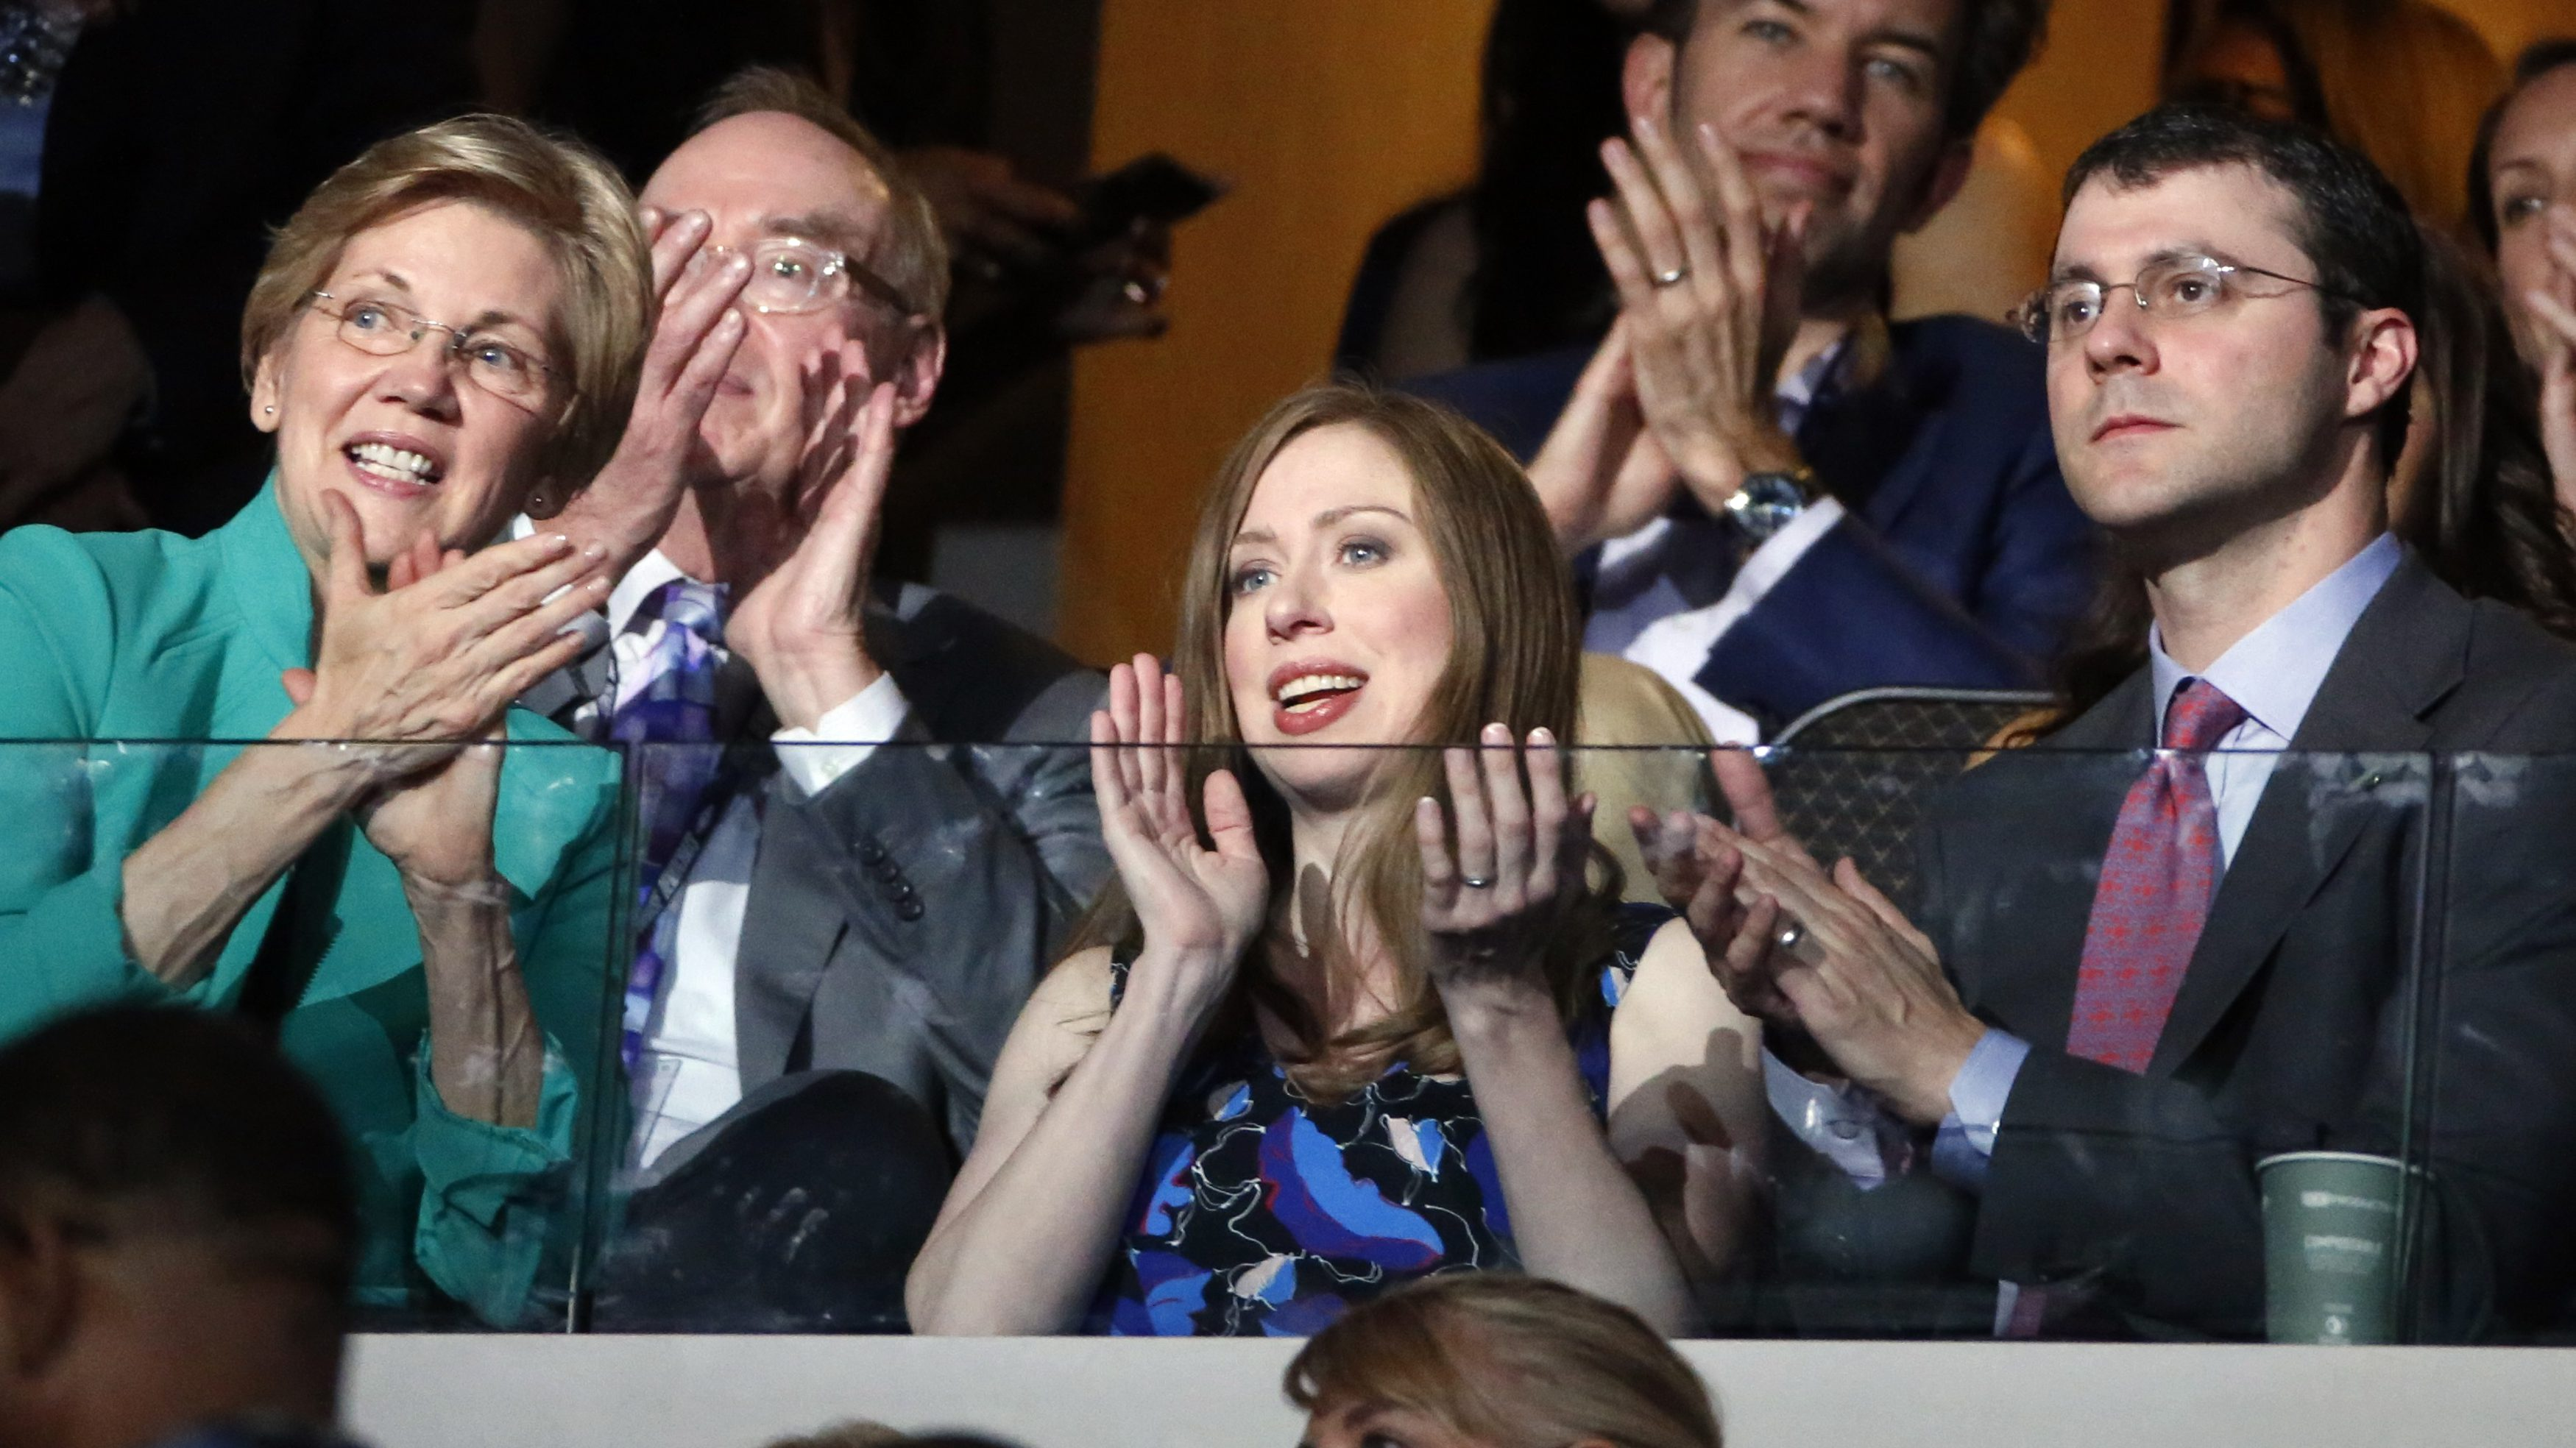 Senator Elizabeth Warren (D- MA) (L) and her husband Bruce Mann applaud with Cheslea Clinton and her husband Marc Mezvinsky during the Democratic National Convention in Philadelphia, Pennsylvania, U.S. July 26, 2016.